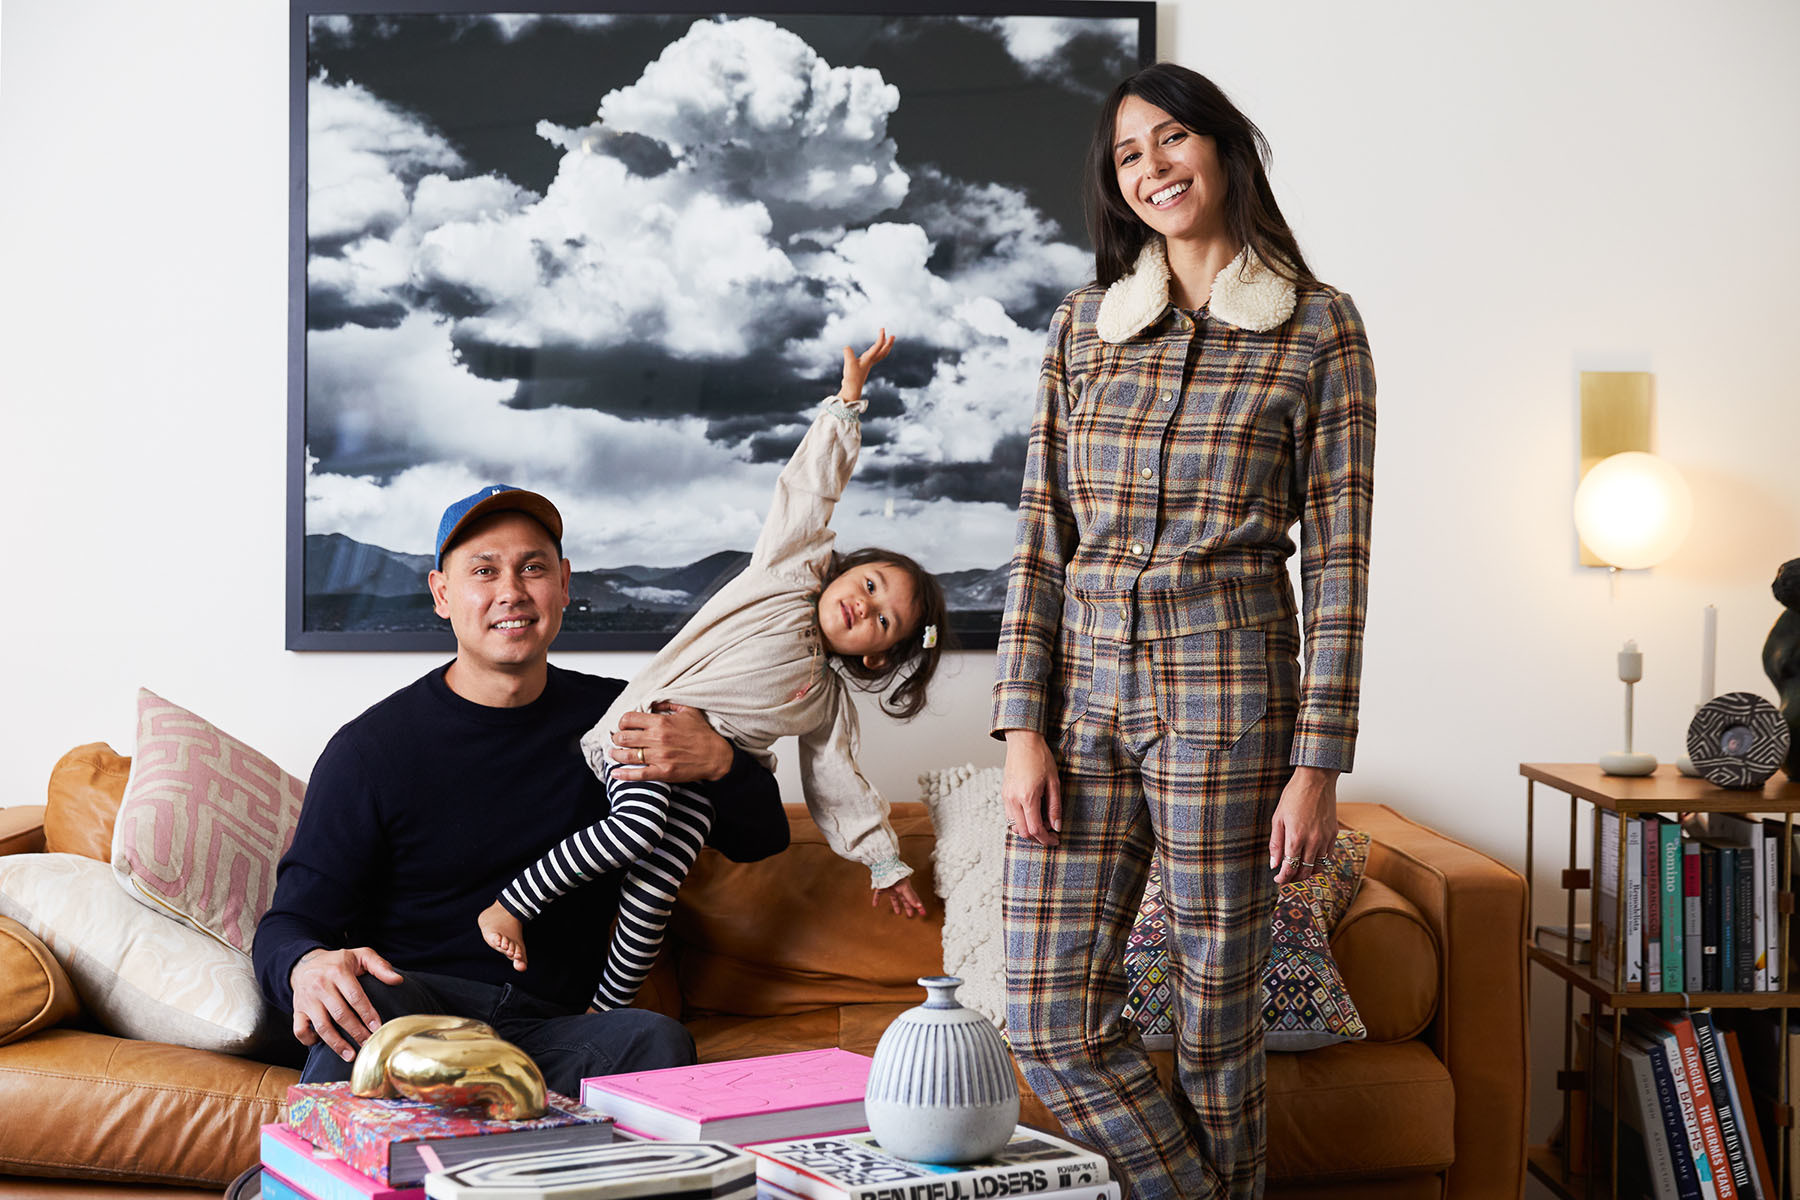 Eric, the couple's daughter Tallieand Angela are right at home in their light and bright living room. ArticleSofa |Minted Photo|St. Frank Pillows |Jayson Home Gold Snake | Bone Inlay Tray |Hudson Valley Lighting Sconce |Sonder Side Table| Angela wearsLykke Wulf pants and jacket.